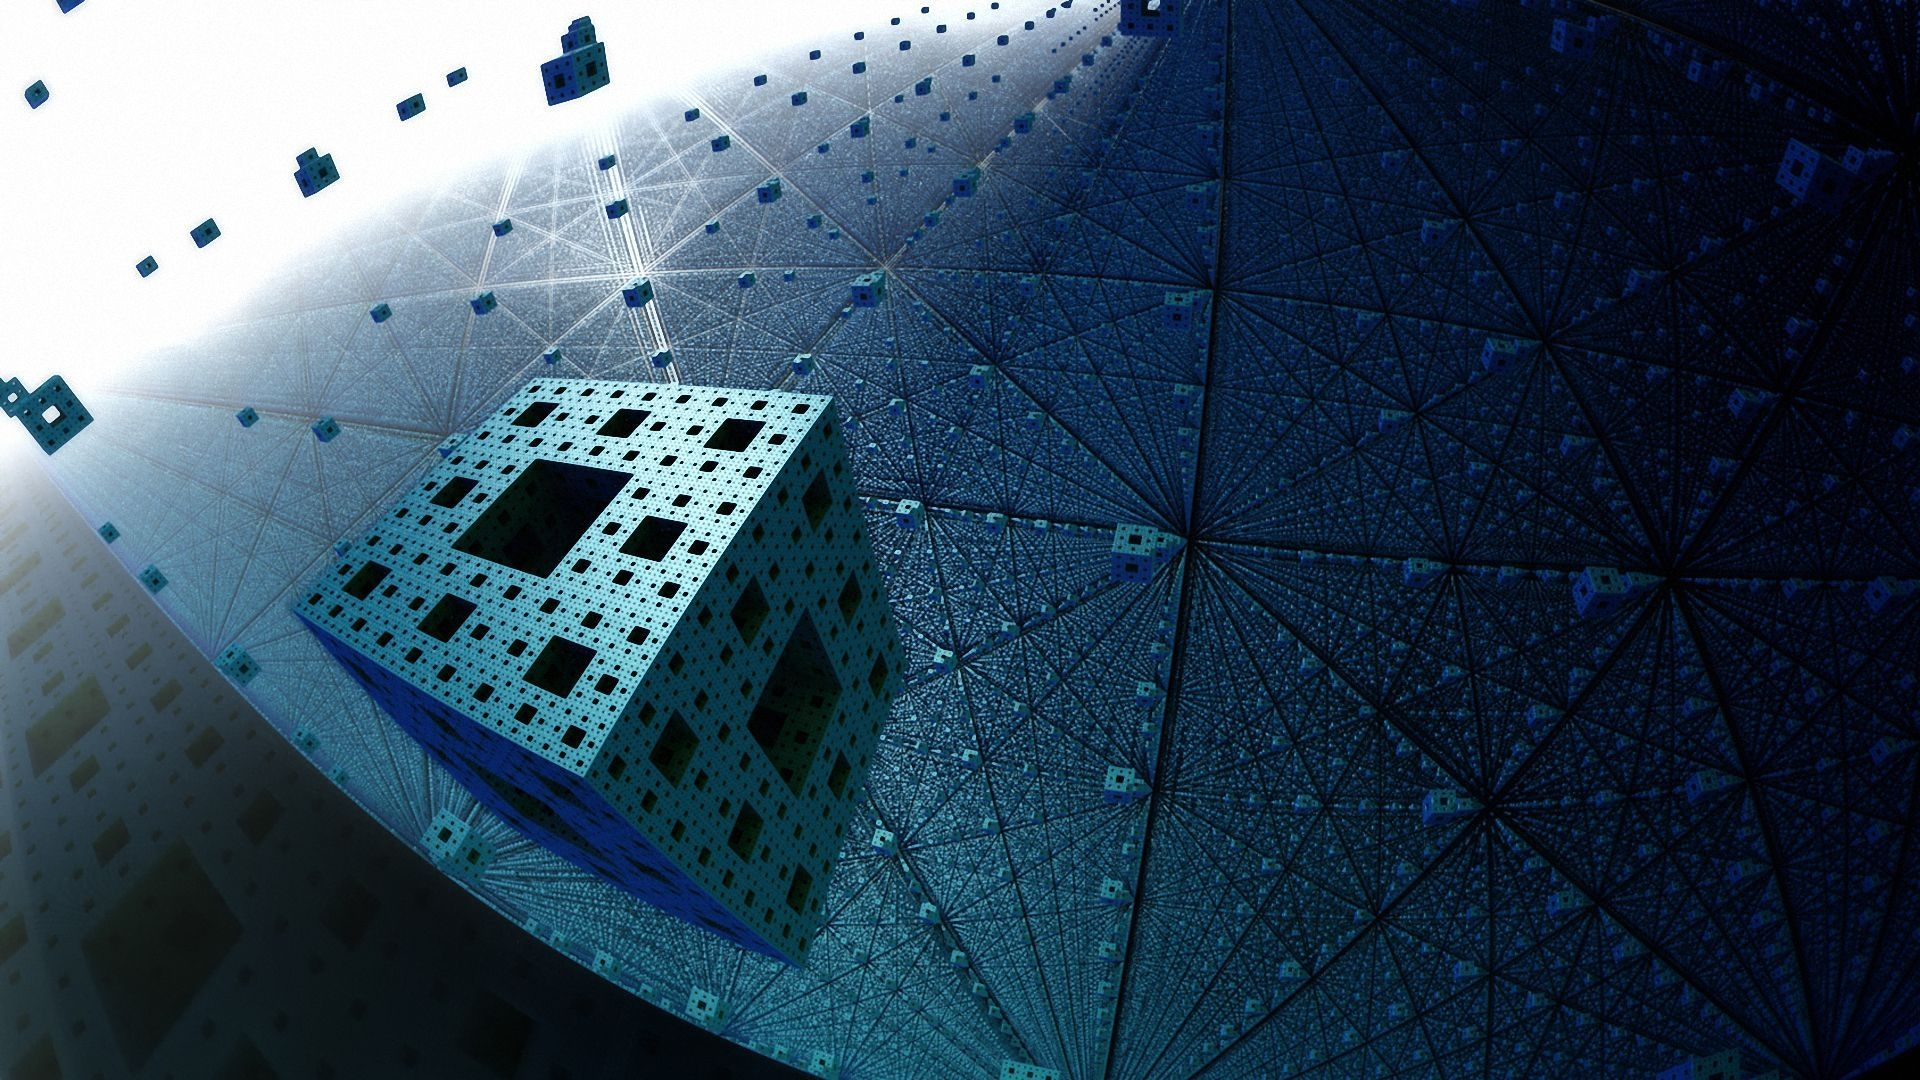 Download Wallpaper Fractal Menger sponge Flight Full HD